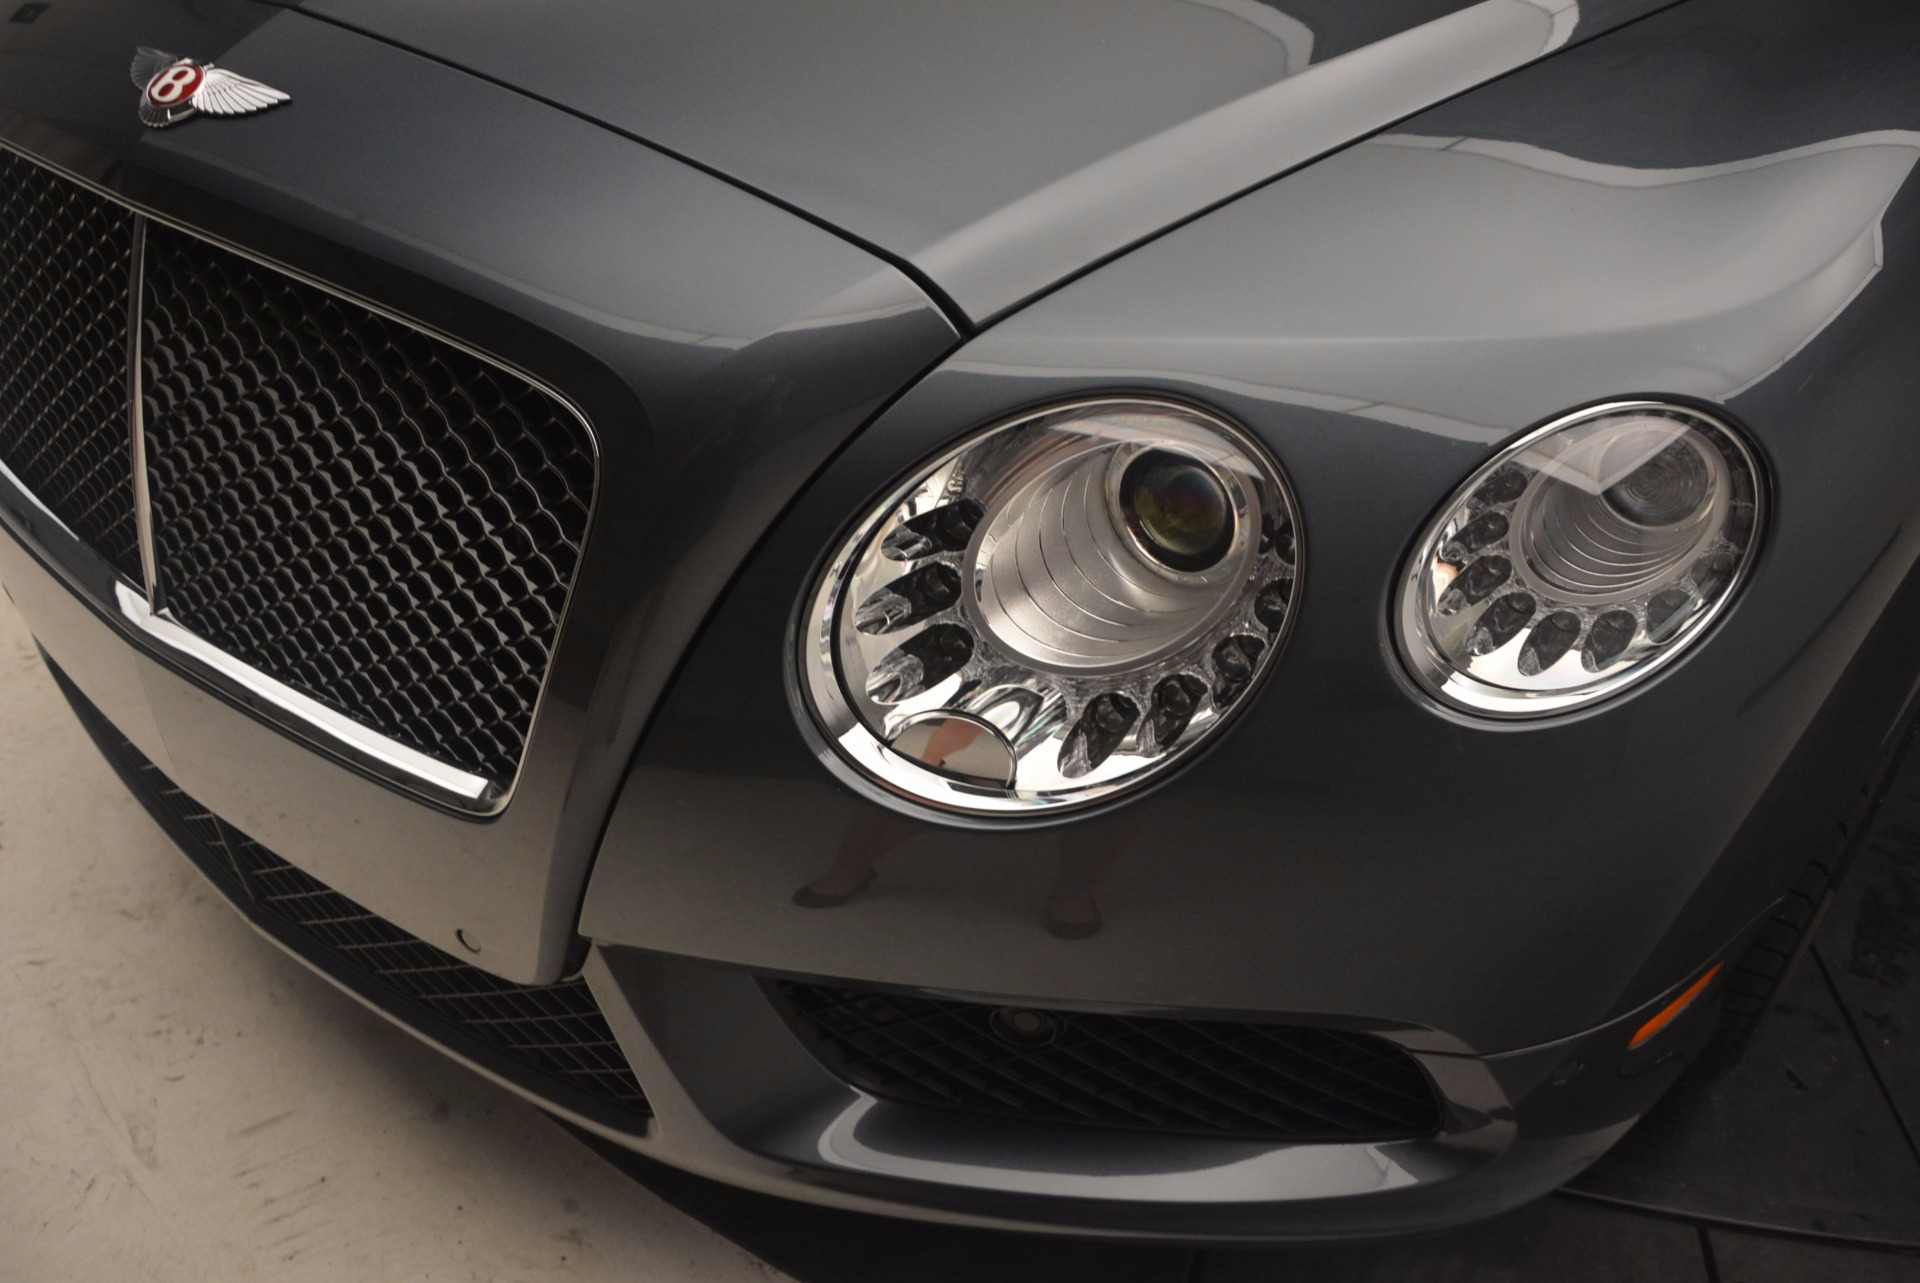 Used 2013 Bentley Continental GT V8 Le Mans Edition, 1 of 48 For Sale In Greenwich, CT. Alfa Romeo of Greenwich, 7226 1288_p27